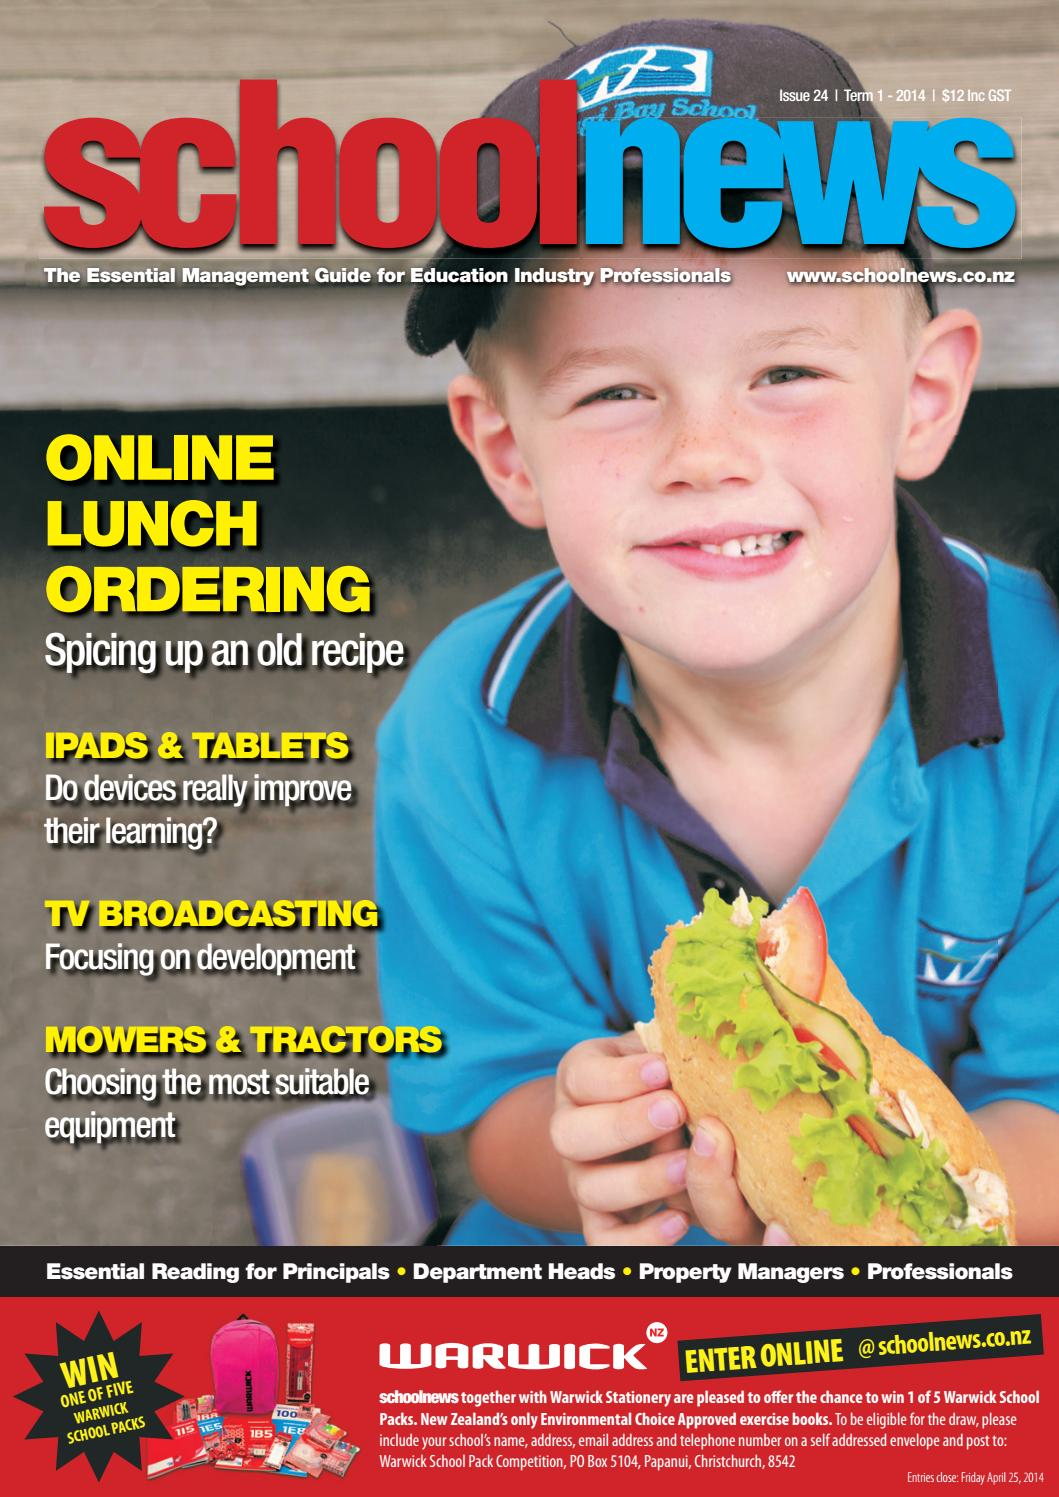 School News Nz Term 1 2014 By Multimedia Au Issuu And Camera 2 Gauge Amp Wiring Kit Soundtech New Zealand Auckland